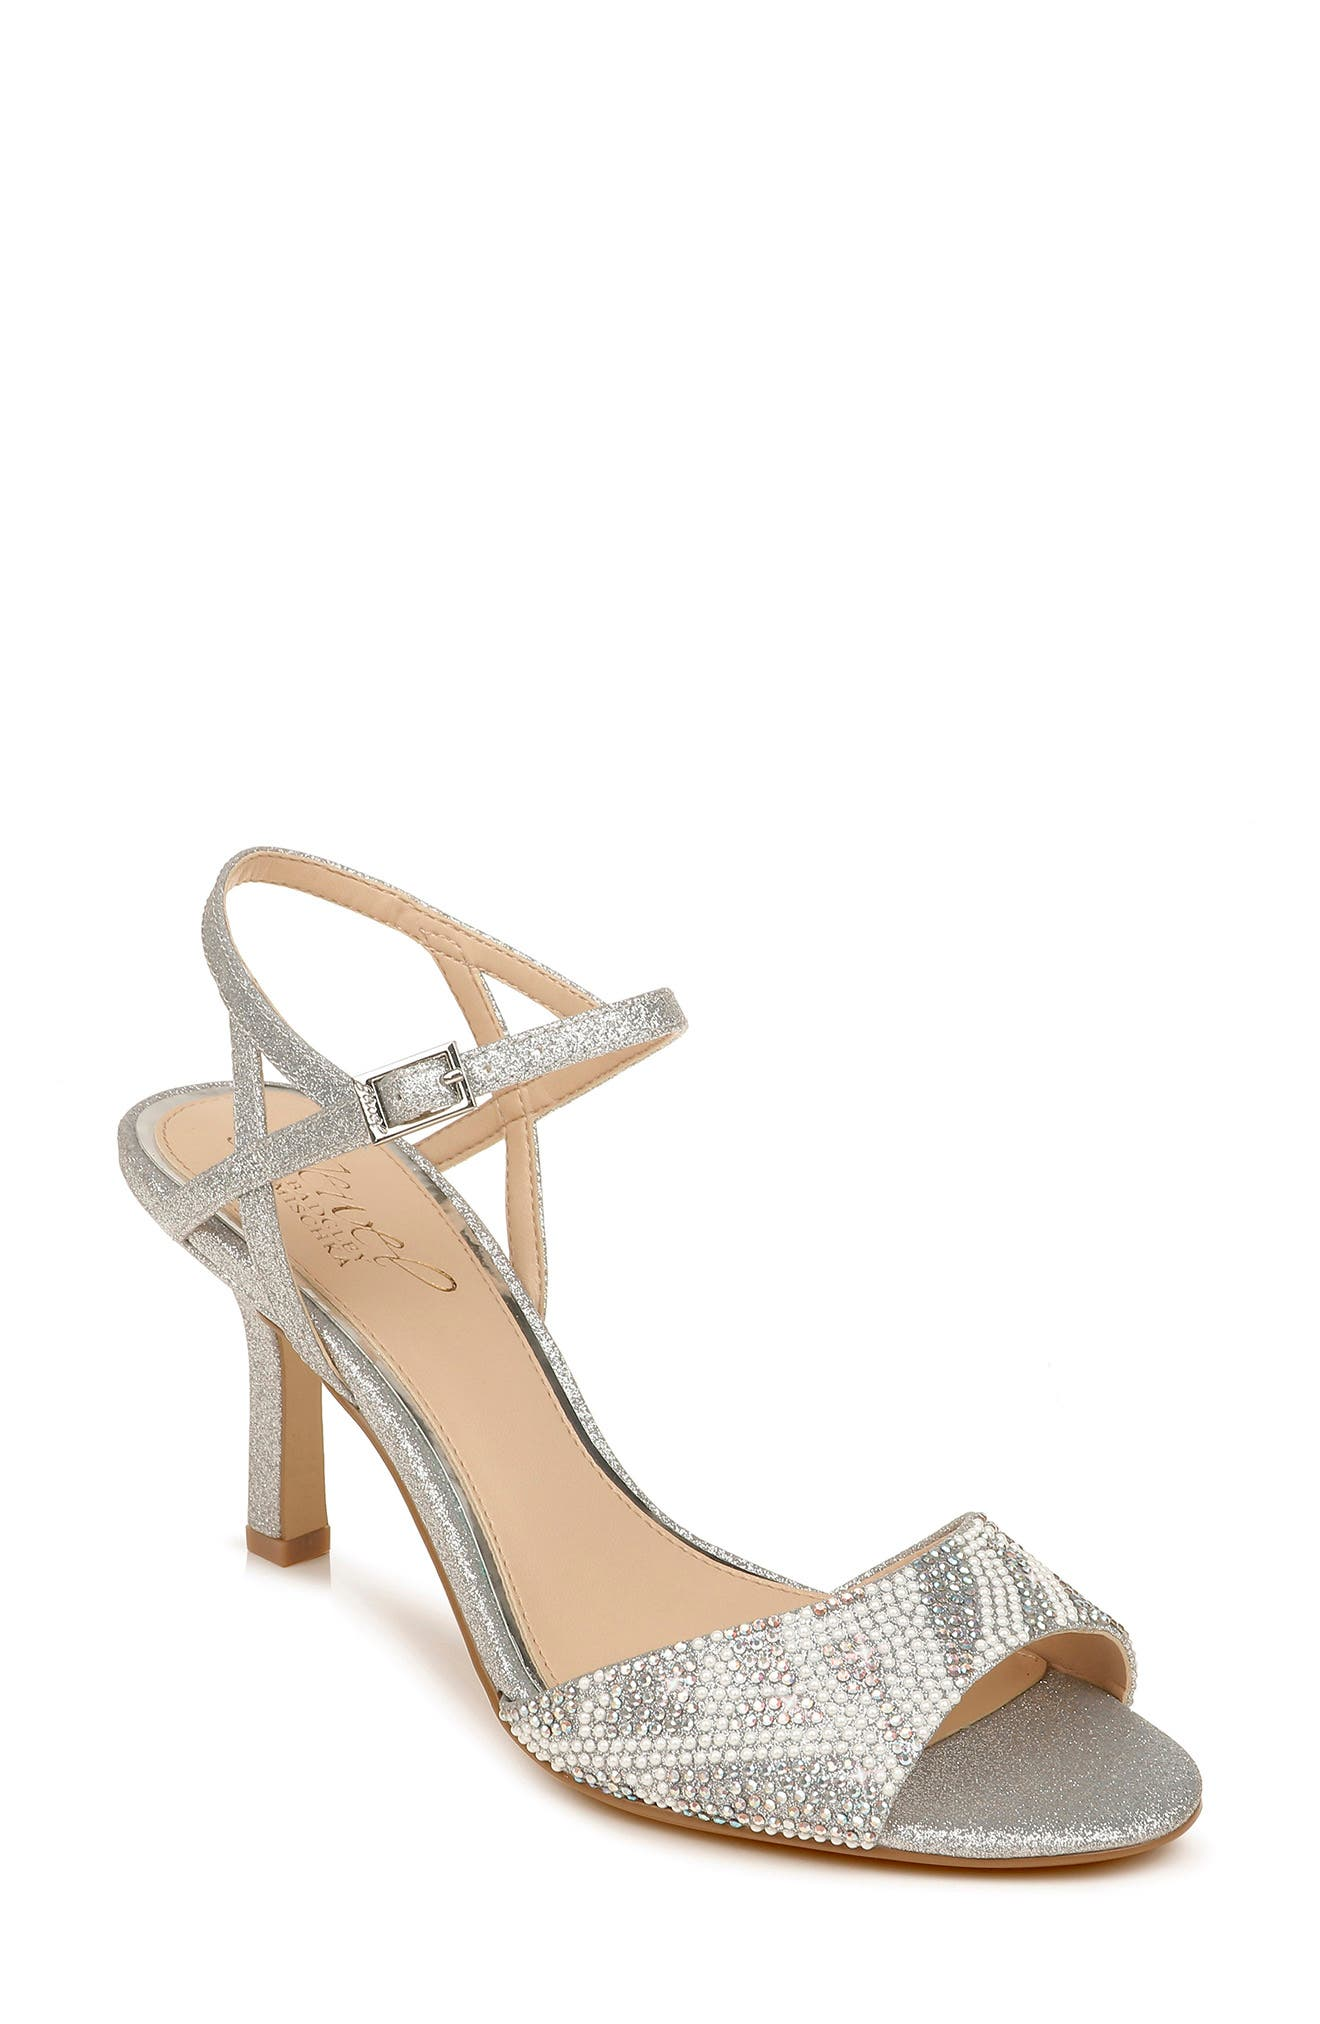 Shimmery crystals and tiny, imitation-pearl beads at the vamp spotlight this glittering quarter-strap sandal set on a just-right heel. Style Name: Jewel Badgley Mischka Fawna Embellished Sandal (Women). Style Number: 6068842. Available in stores.